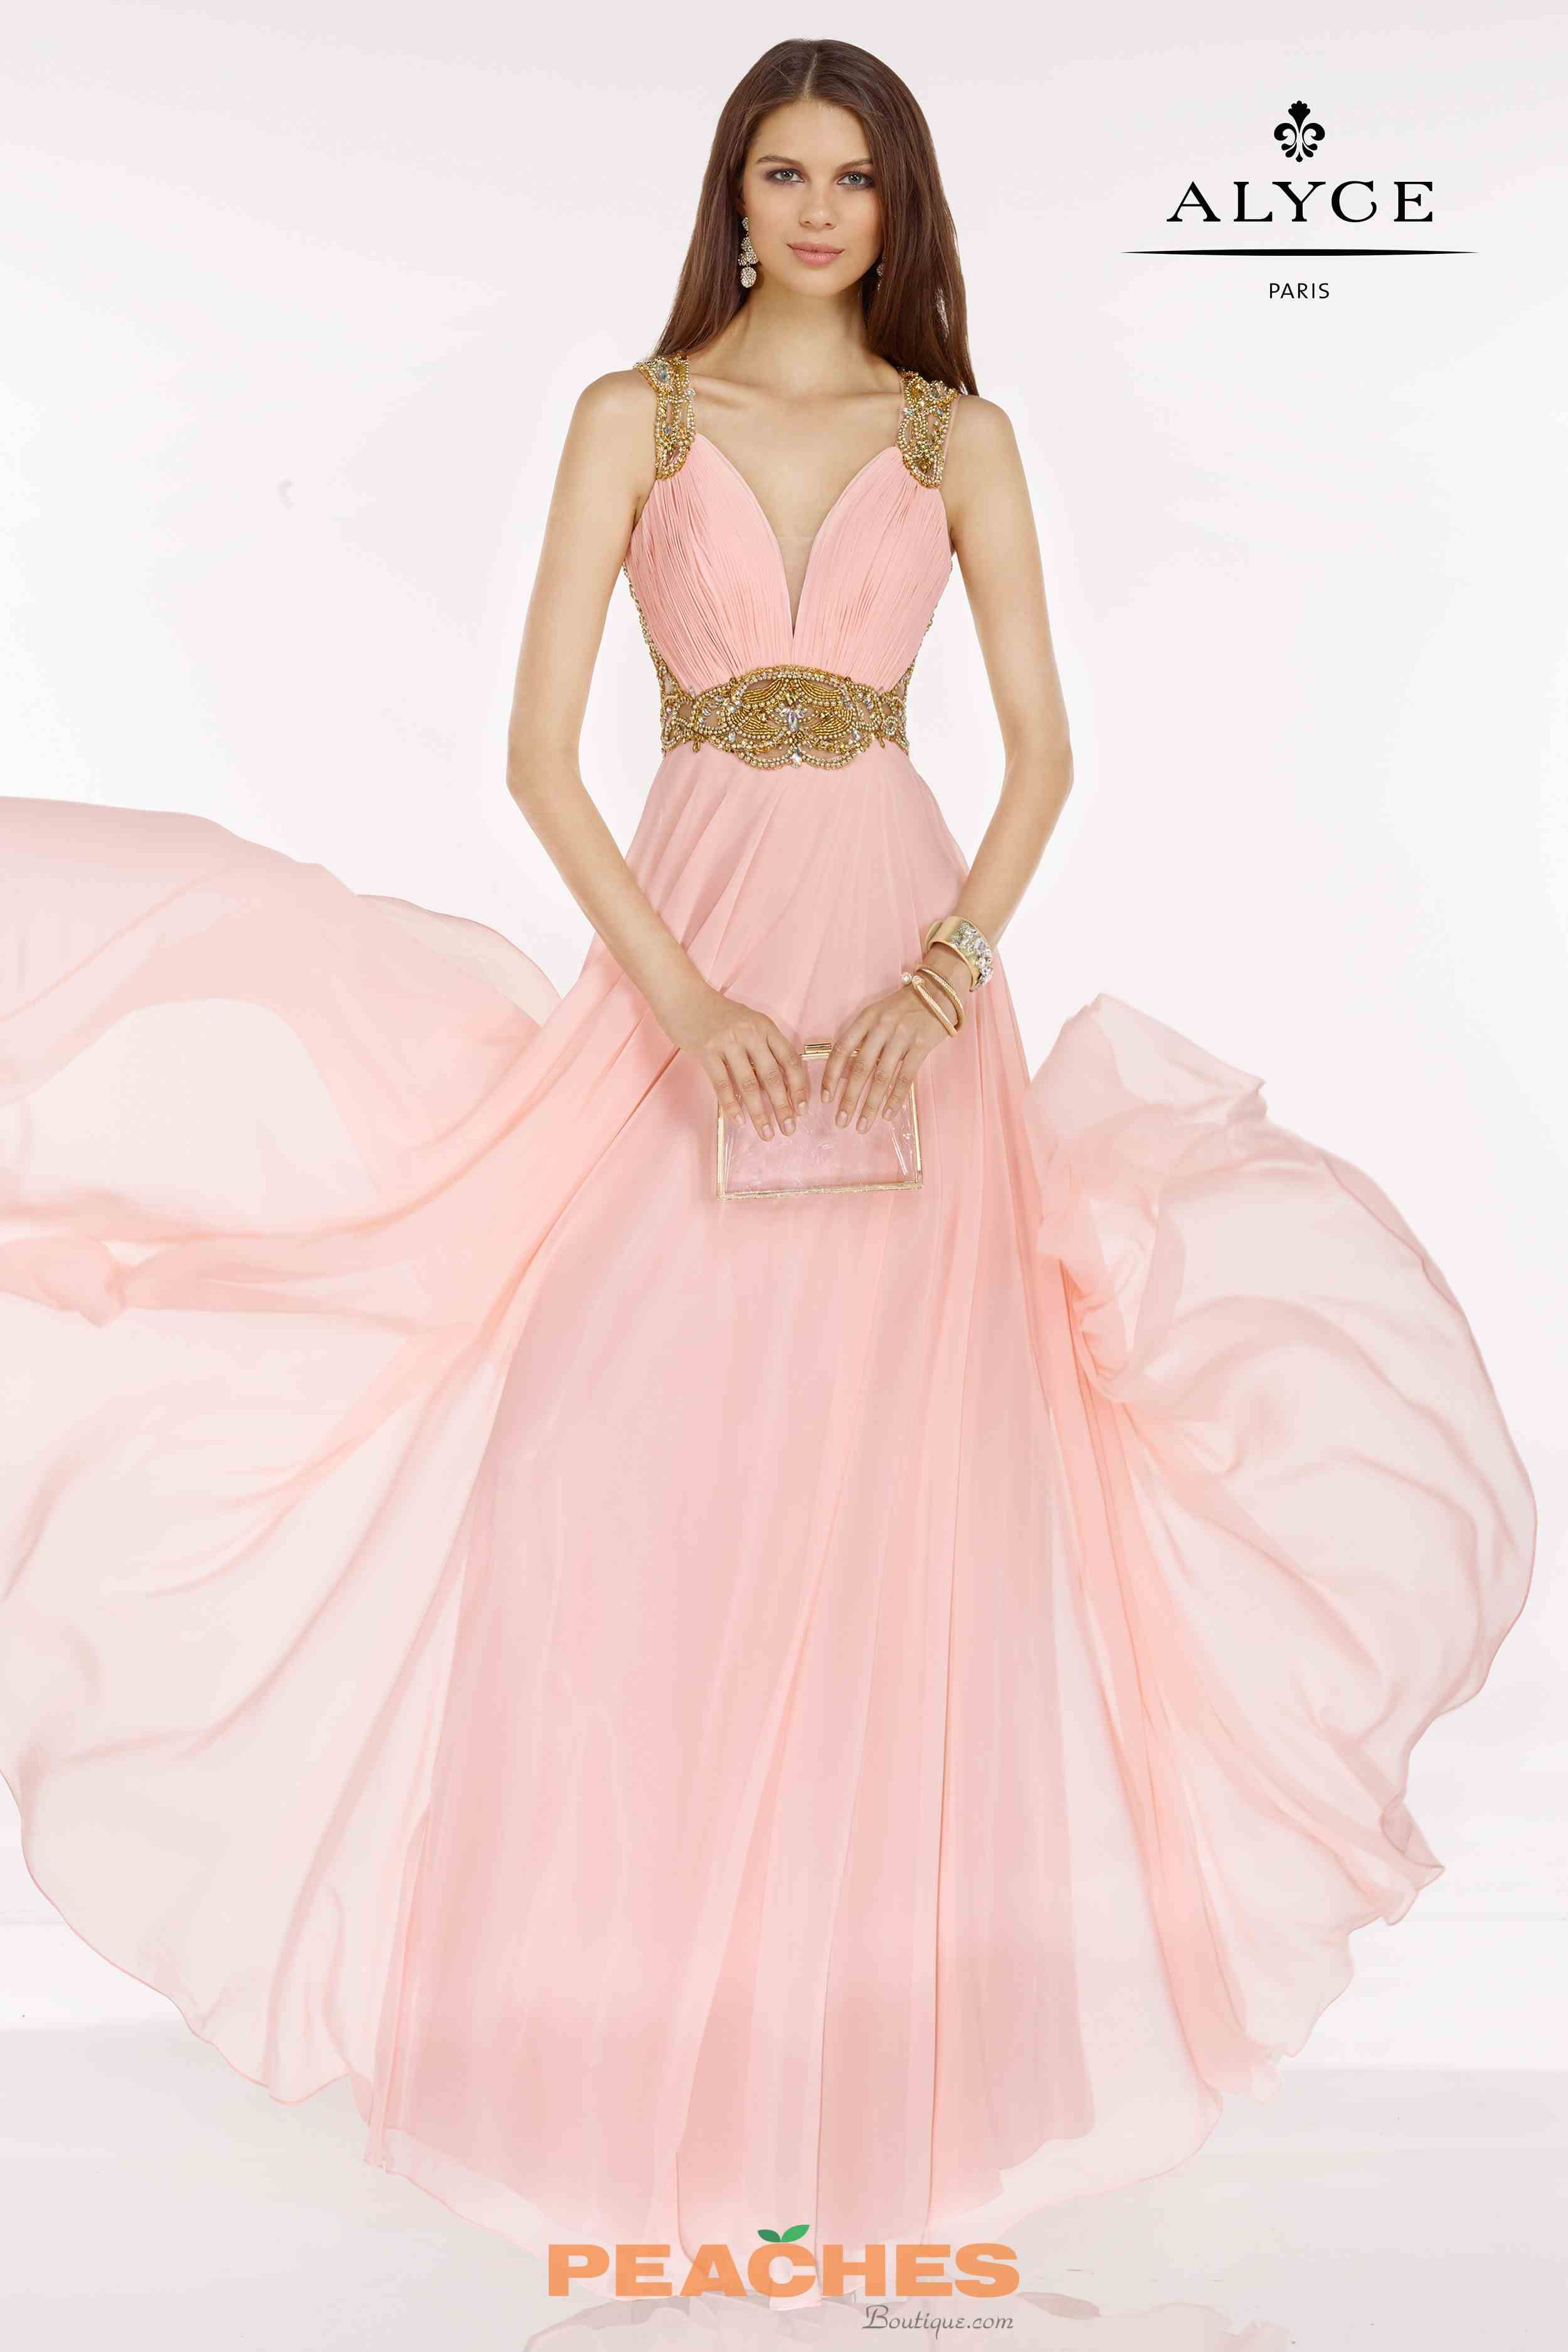 Alyce 6606 Dress | Dresses and gowns | Pinterest | Gowns